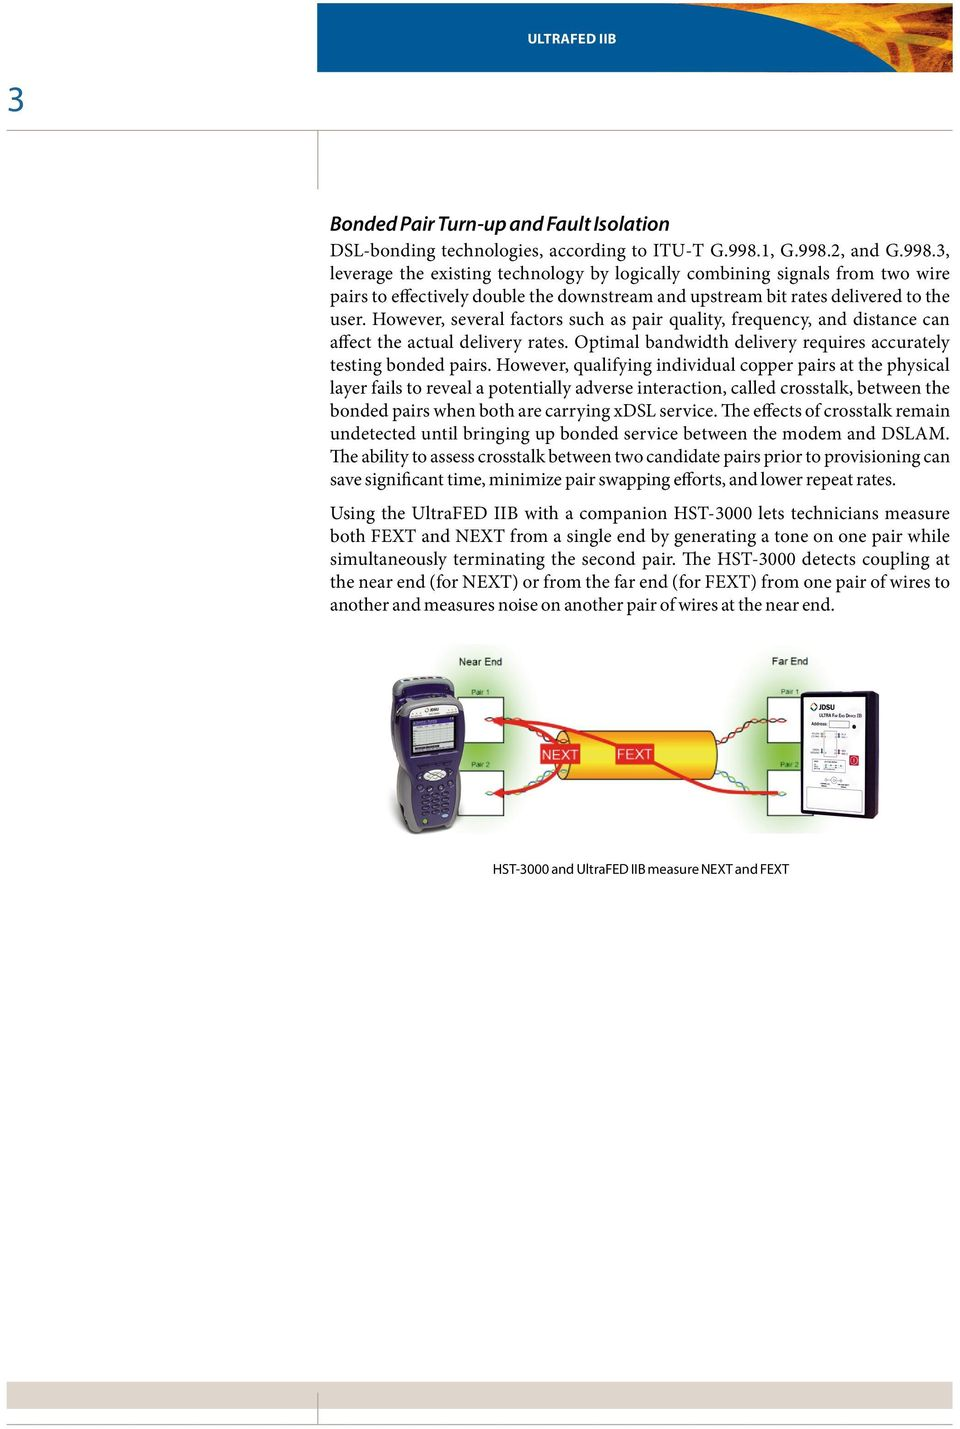 However, several factors such as pair quality, frequency, and distance can affect the actual delivery rates. Optimal bandwidth delivery requires accurately testing bonded pairs.